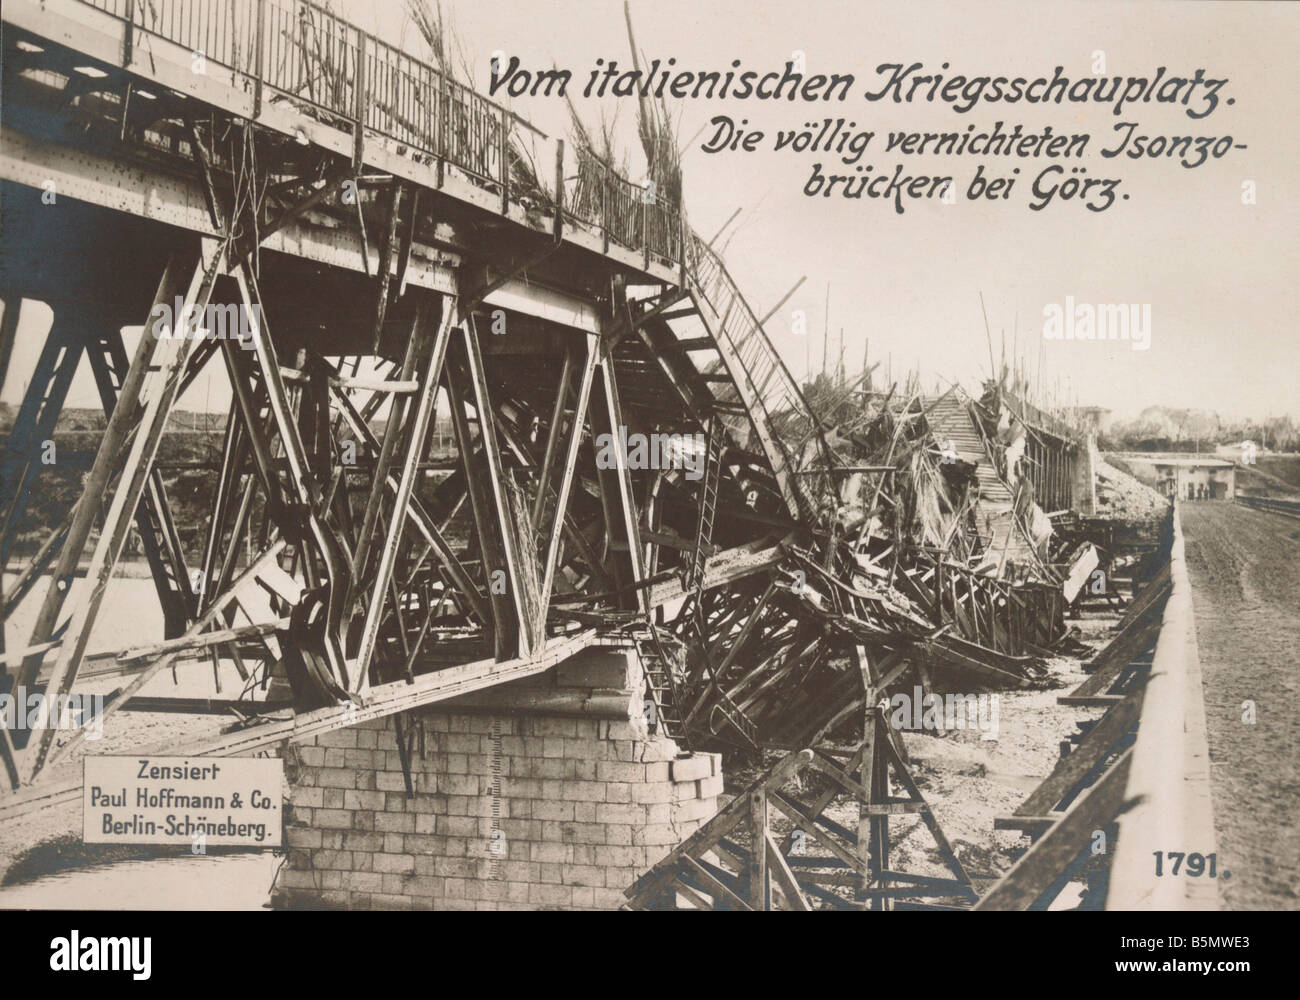 9it 1915 0 0 a1 1 e ww1 italy destroyed isonzo bridges world war 1 9it 1915 0 0 a1 1 e ww1 italy destroyed isonzo bridges world war 1 italian front battles of isonzo 1915 17 after italy entered t sciox Gallery